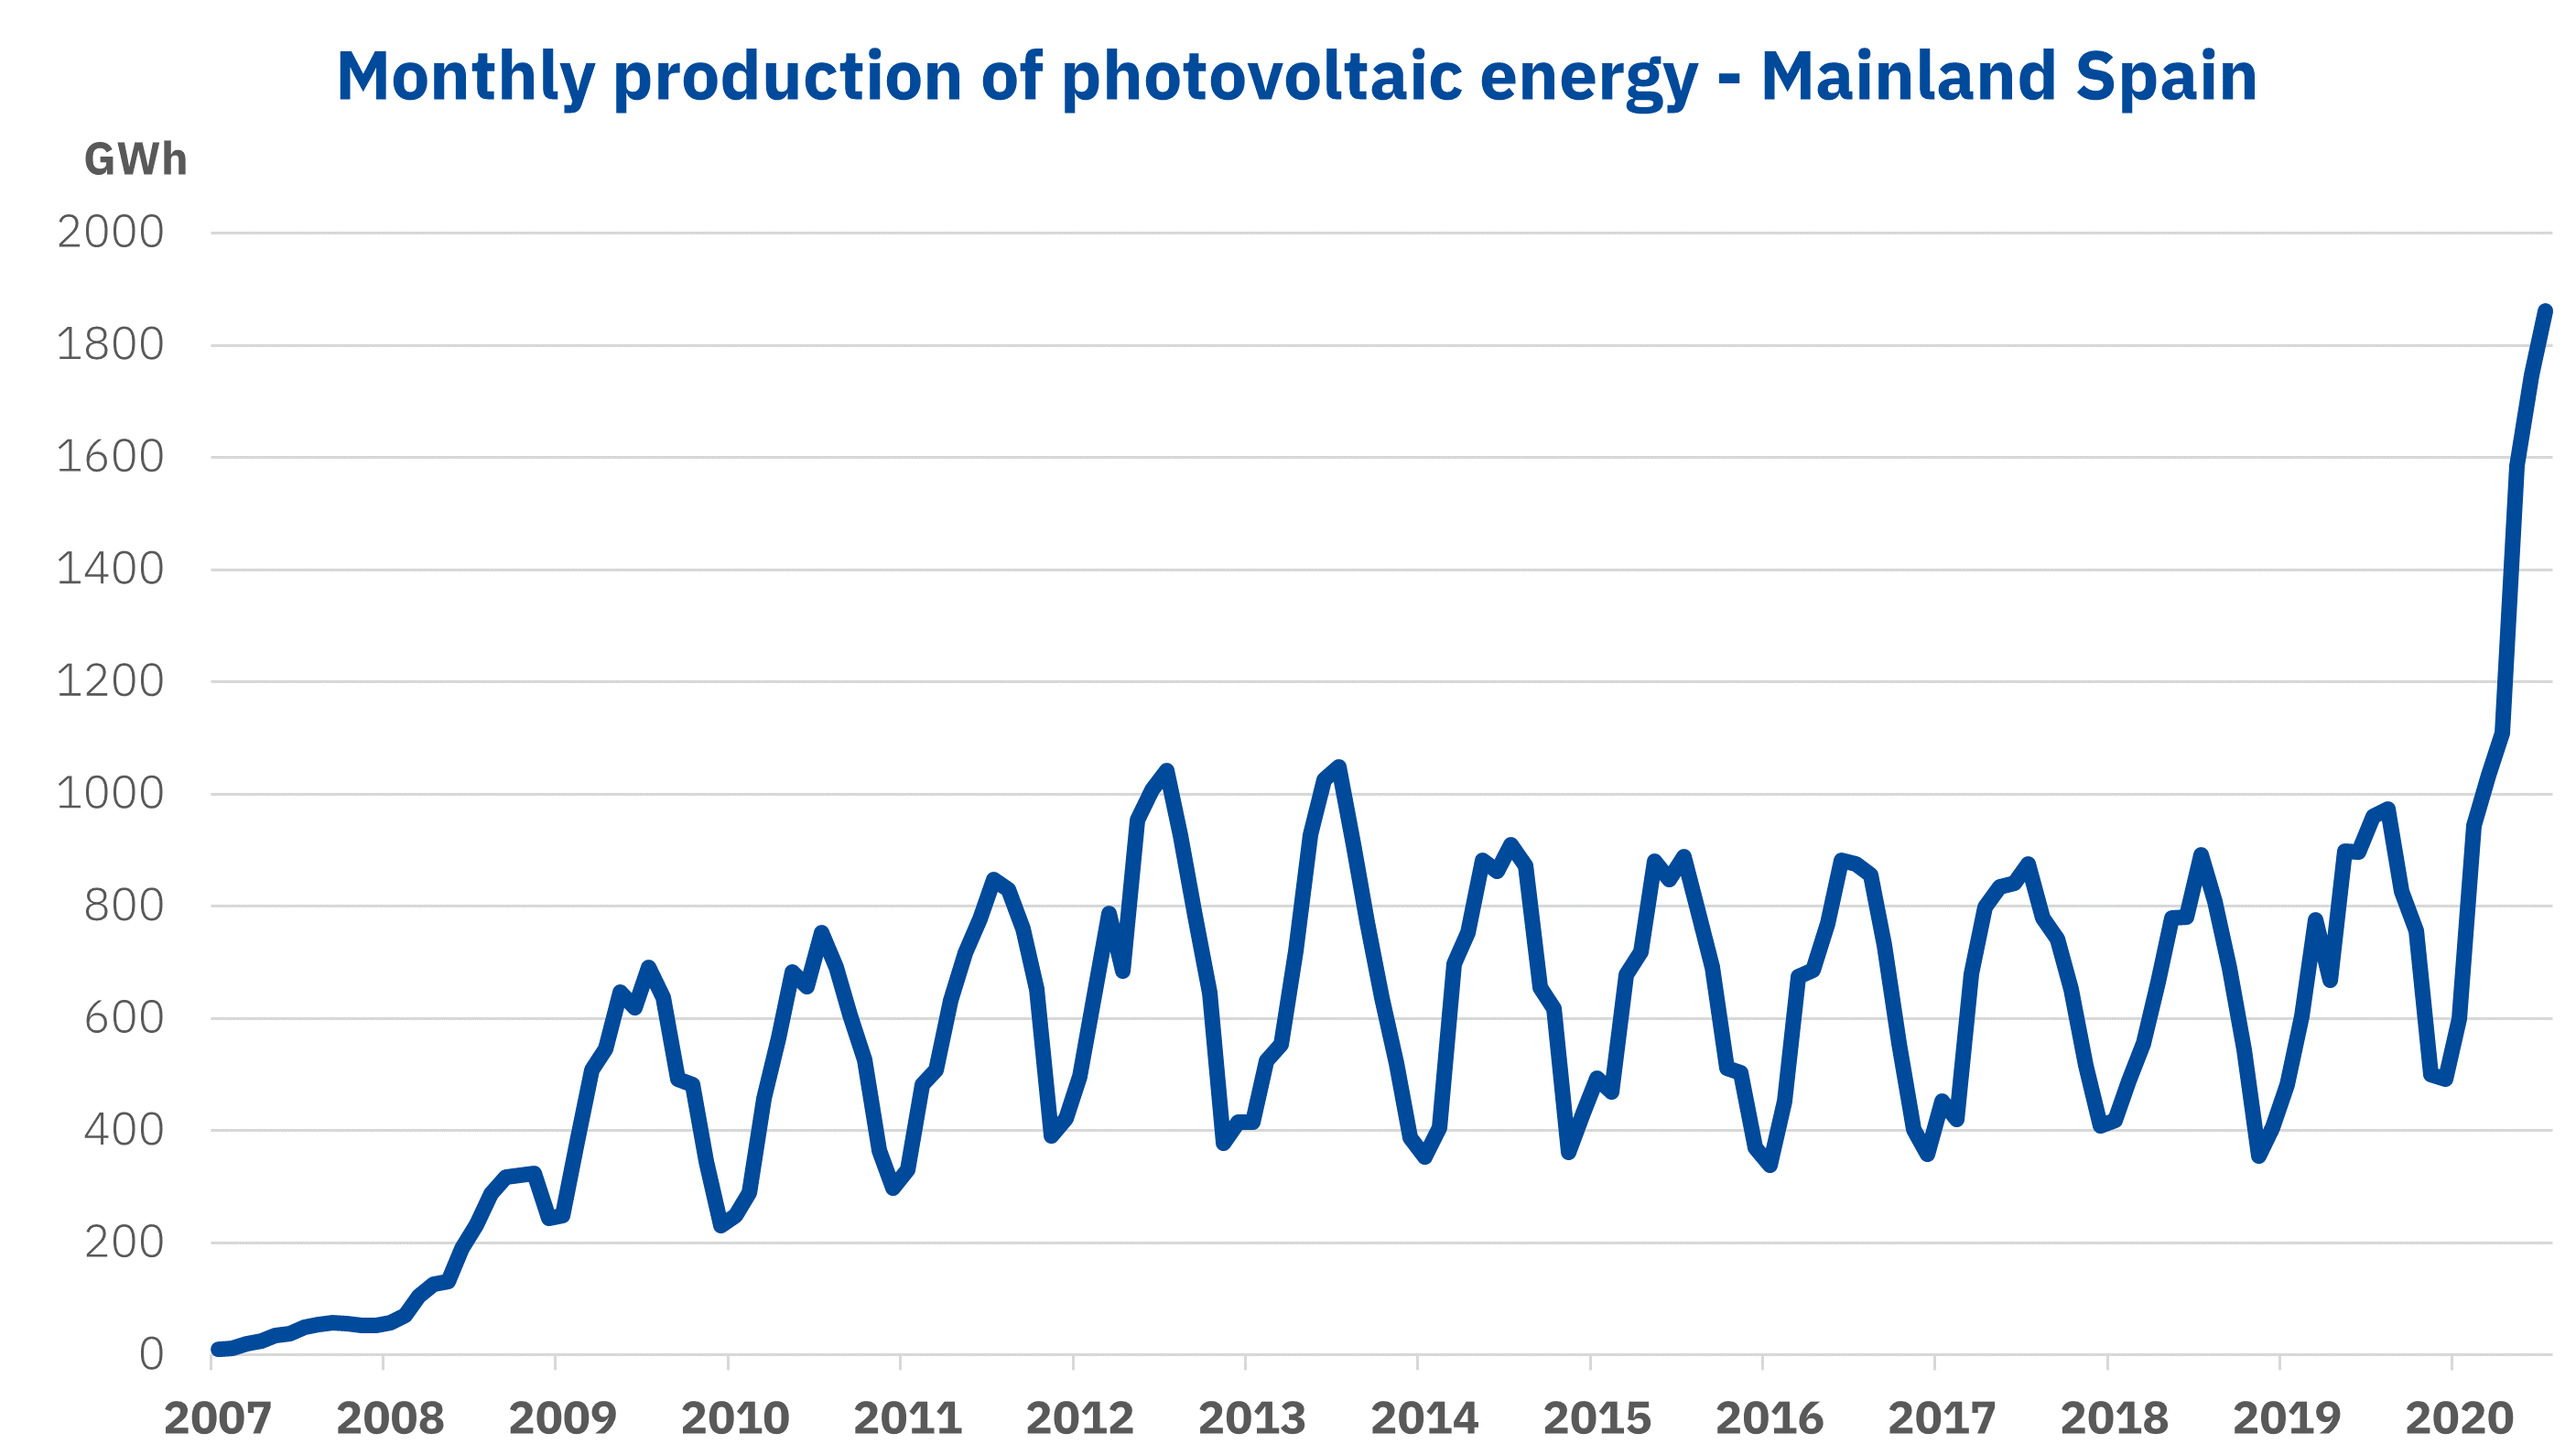 AleaSoft - Monthly production photovoltaic energy Spain